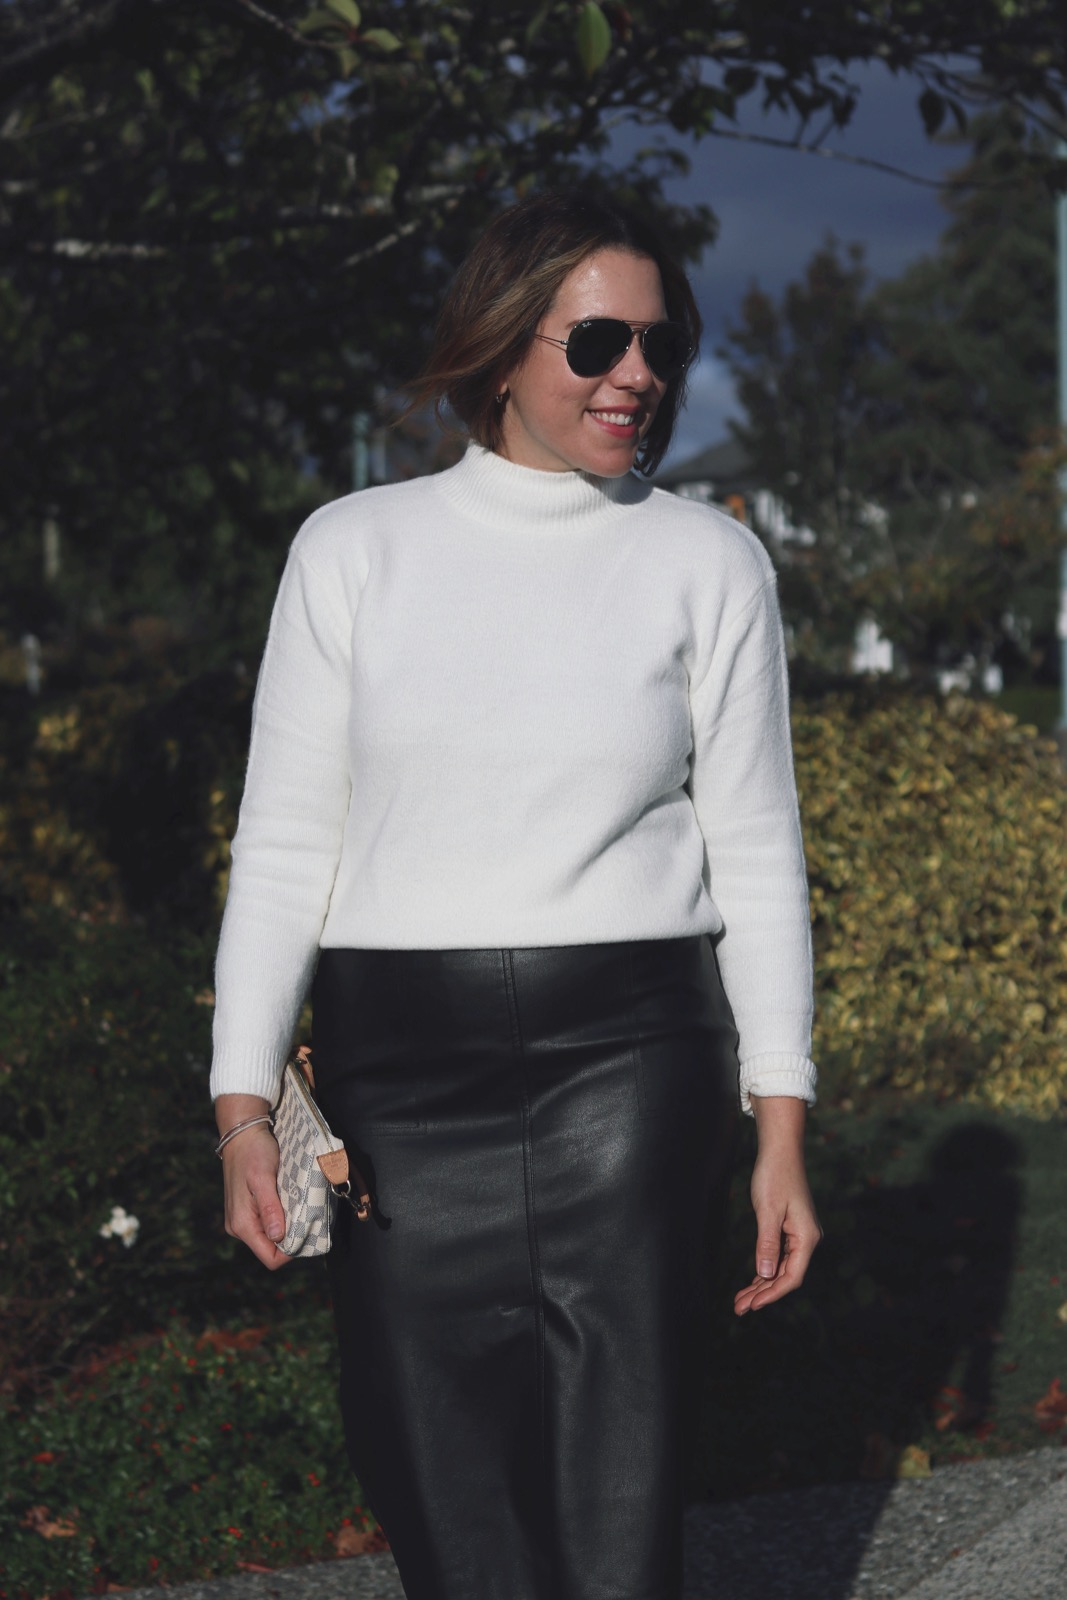 Le Chateau mock neck sweater and faux leather skirt outfit